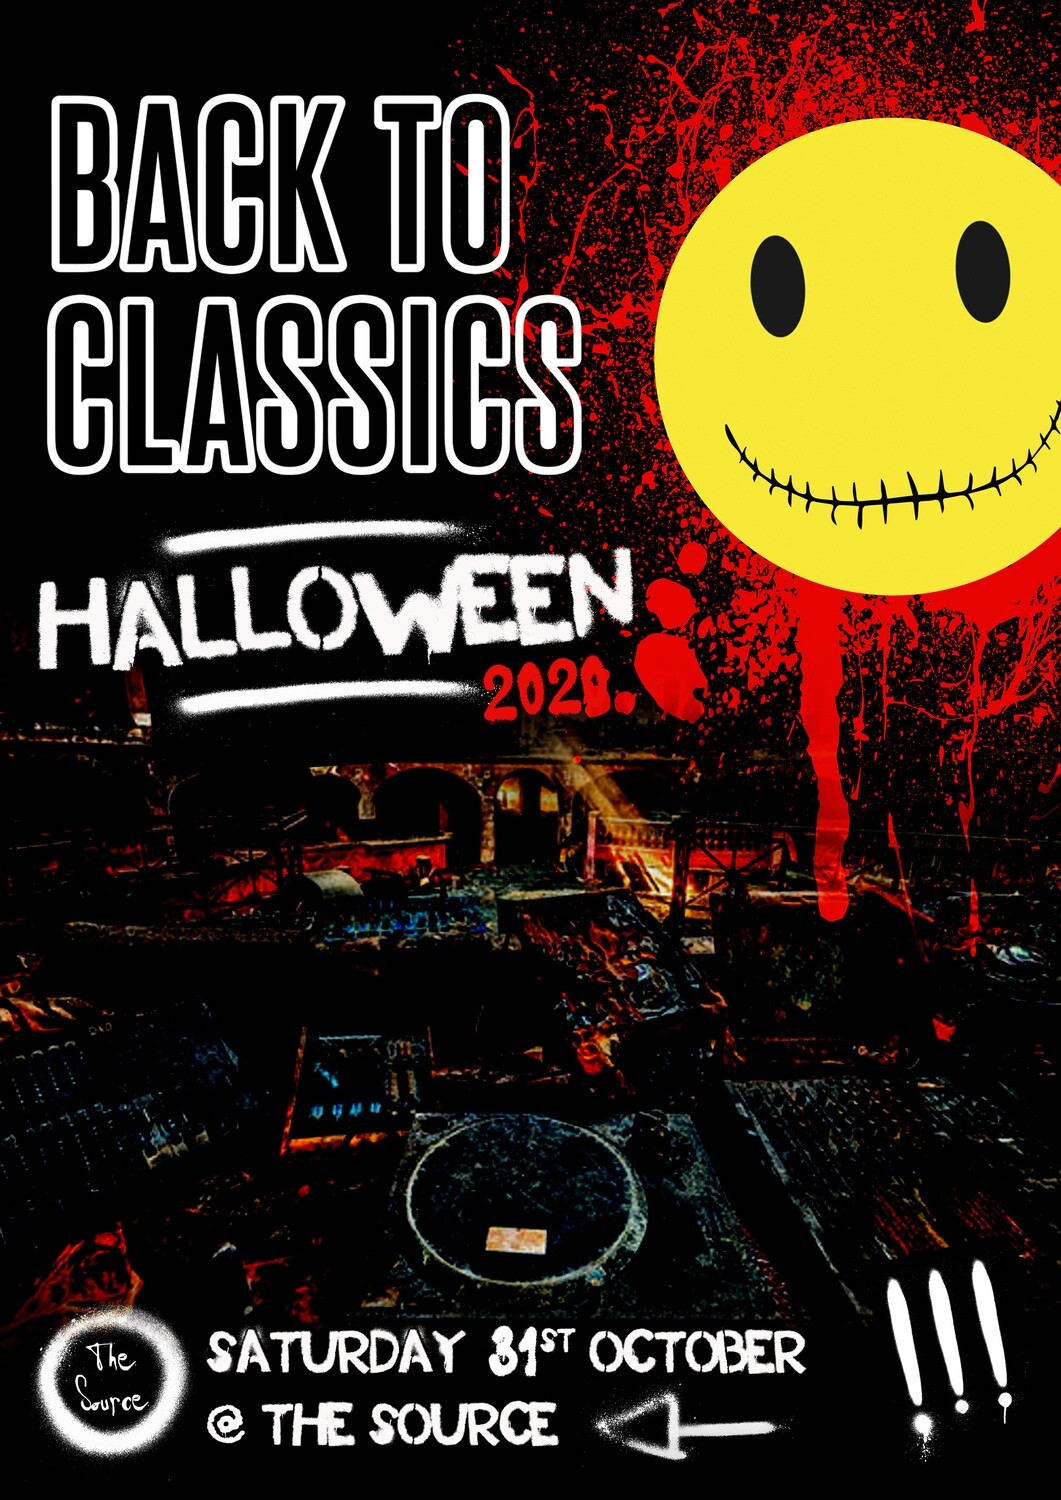 Saturday 31st October 2020 - Back To Classics Halloween Special